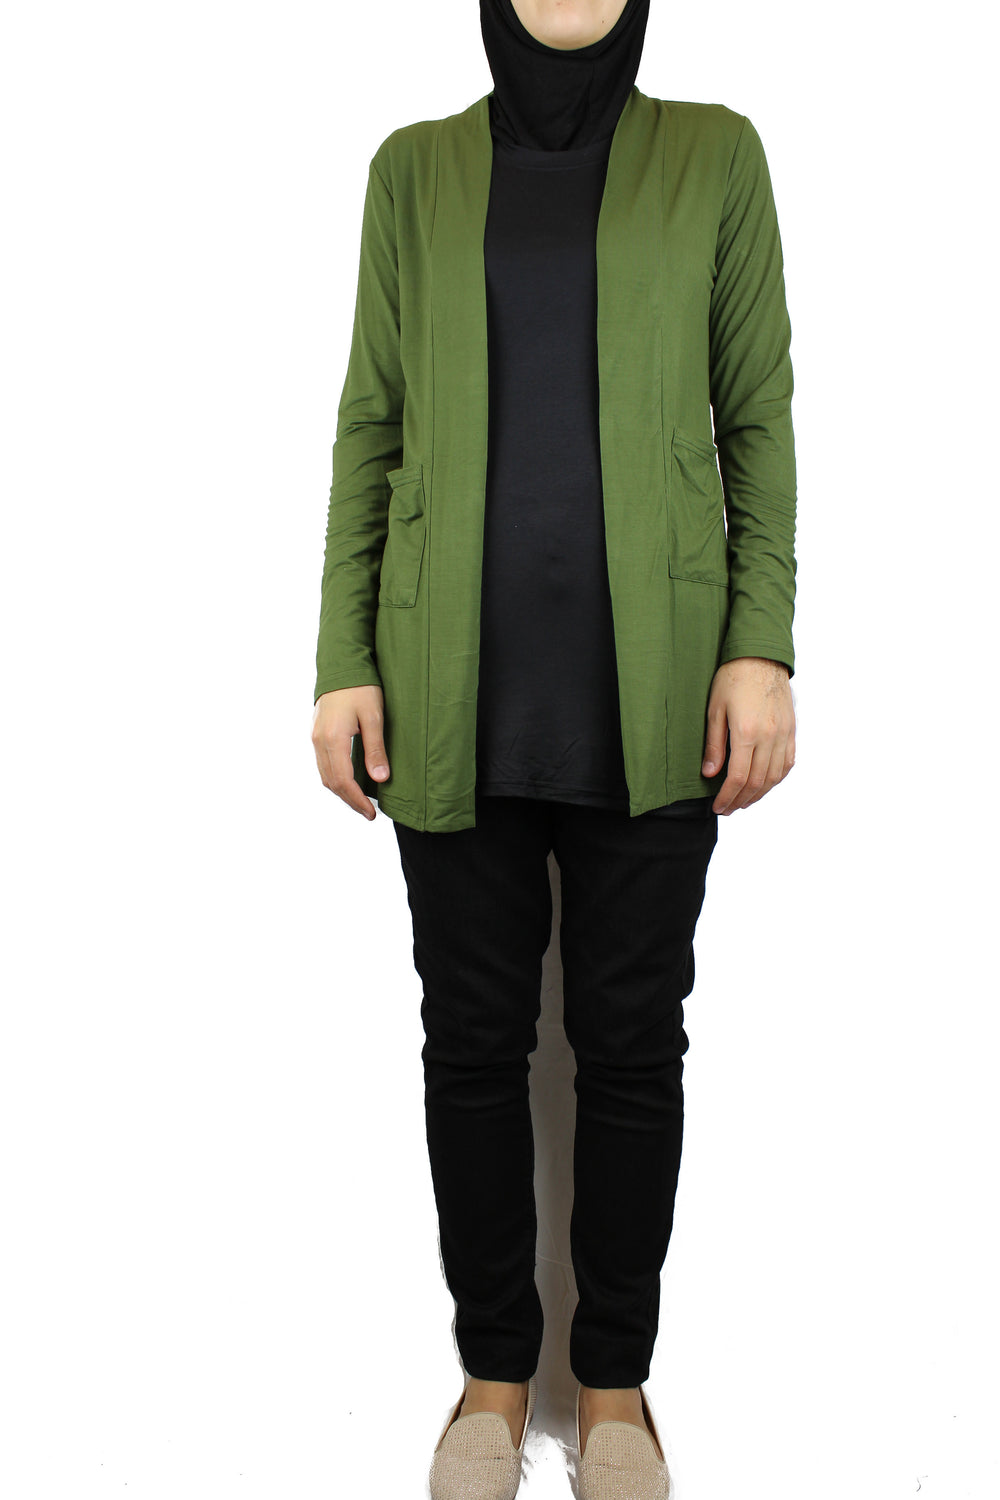 basic olive green long sleeve cardigan with pockets